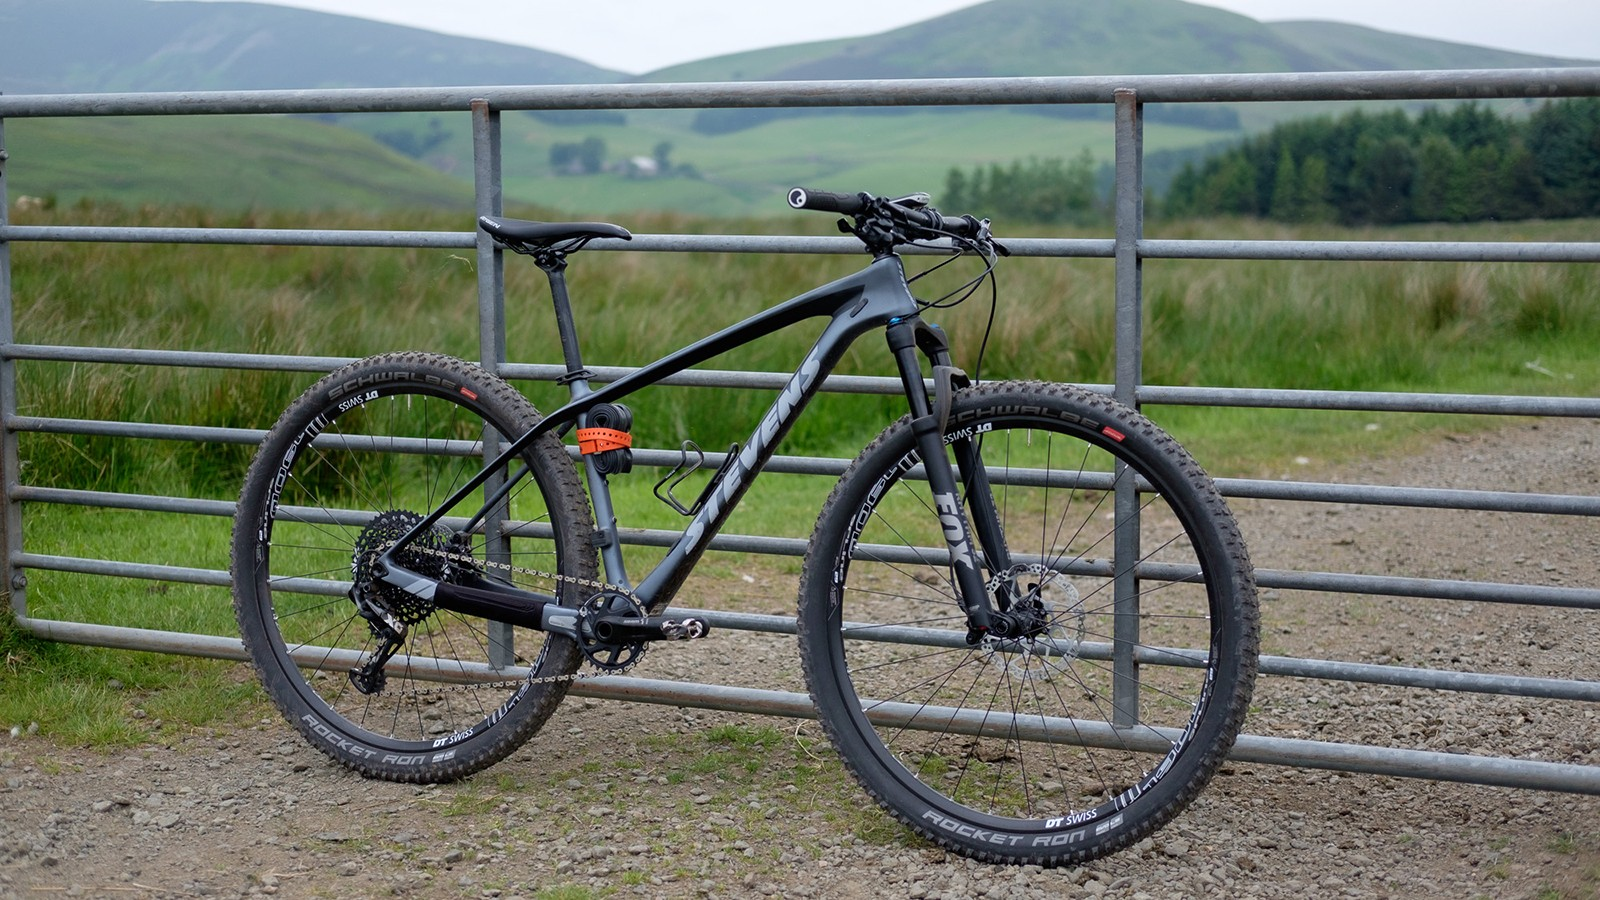 Is this better than a gravel bike? Quite possibly